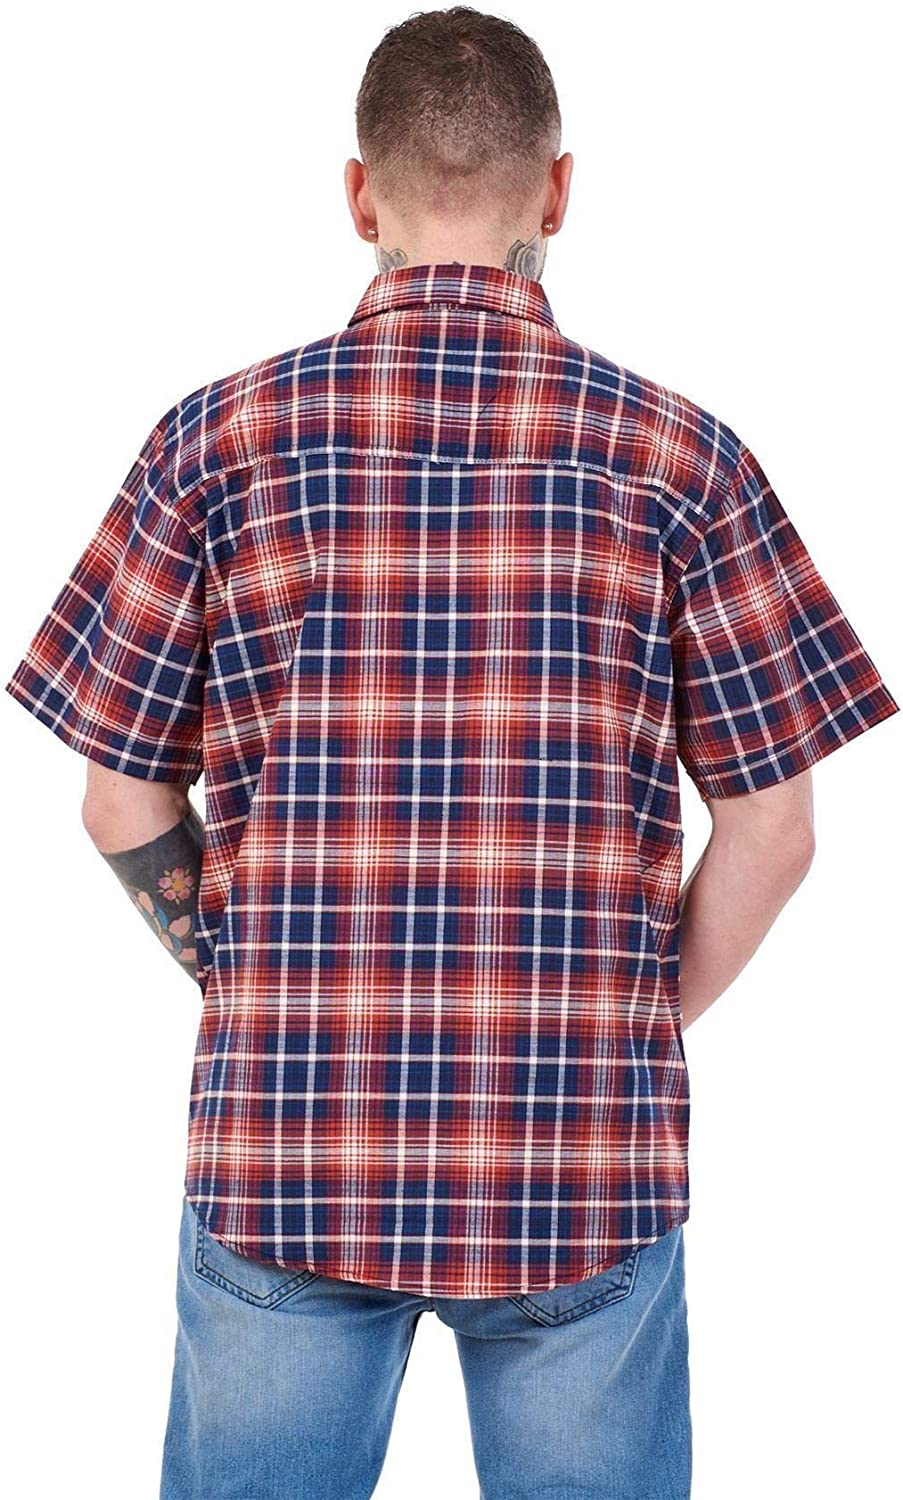 Apparel Mens Regular Big Size Shirts Checked Cotton Blend Casual Short Sleeve Blue M-5XL Red Navy